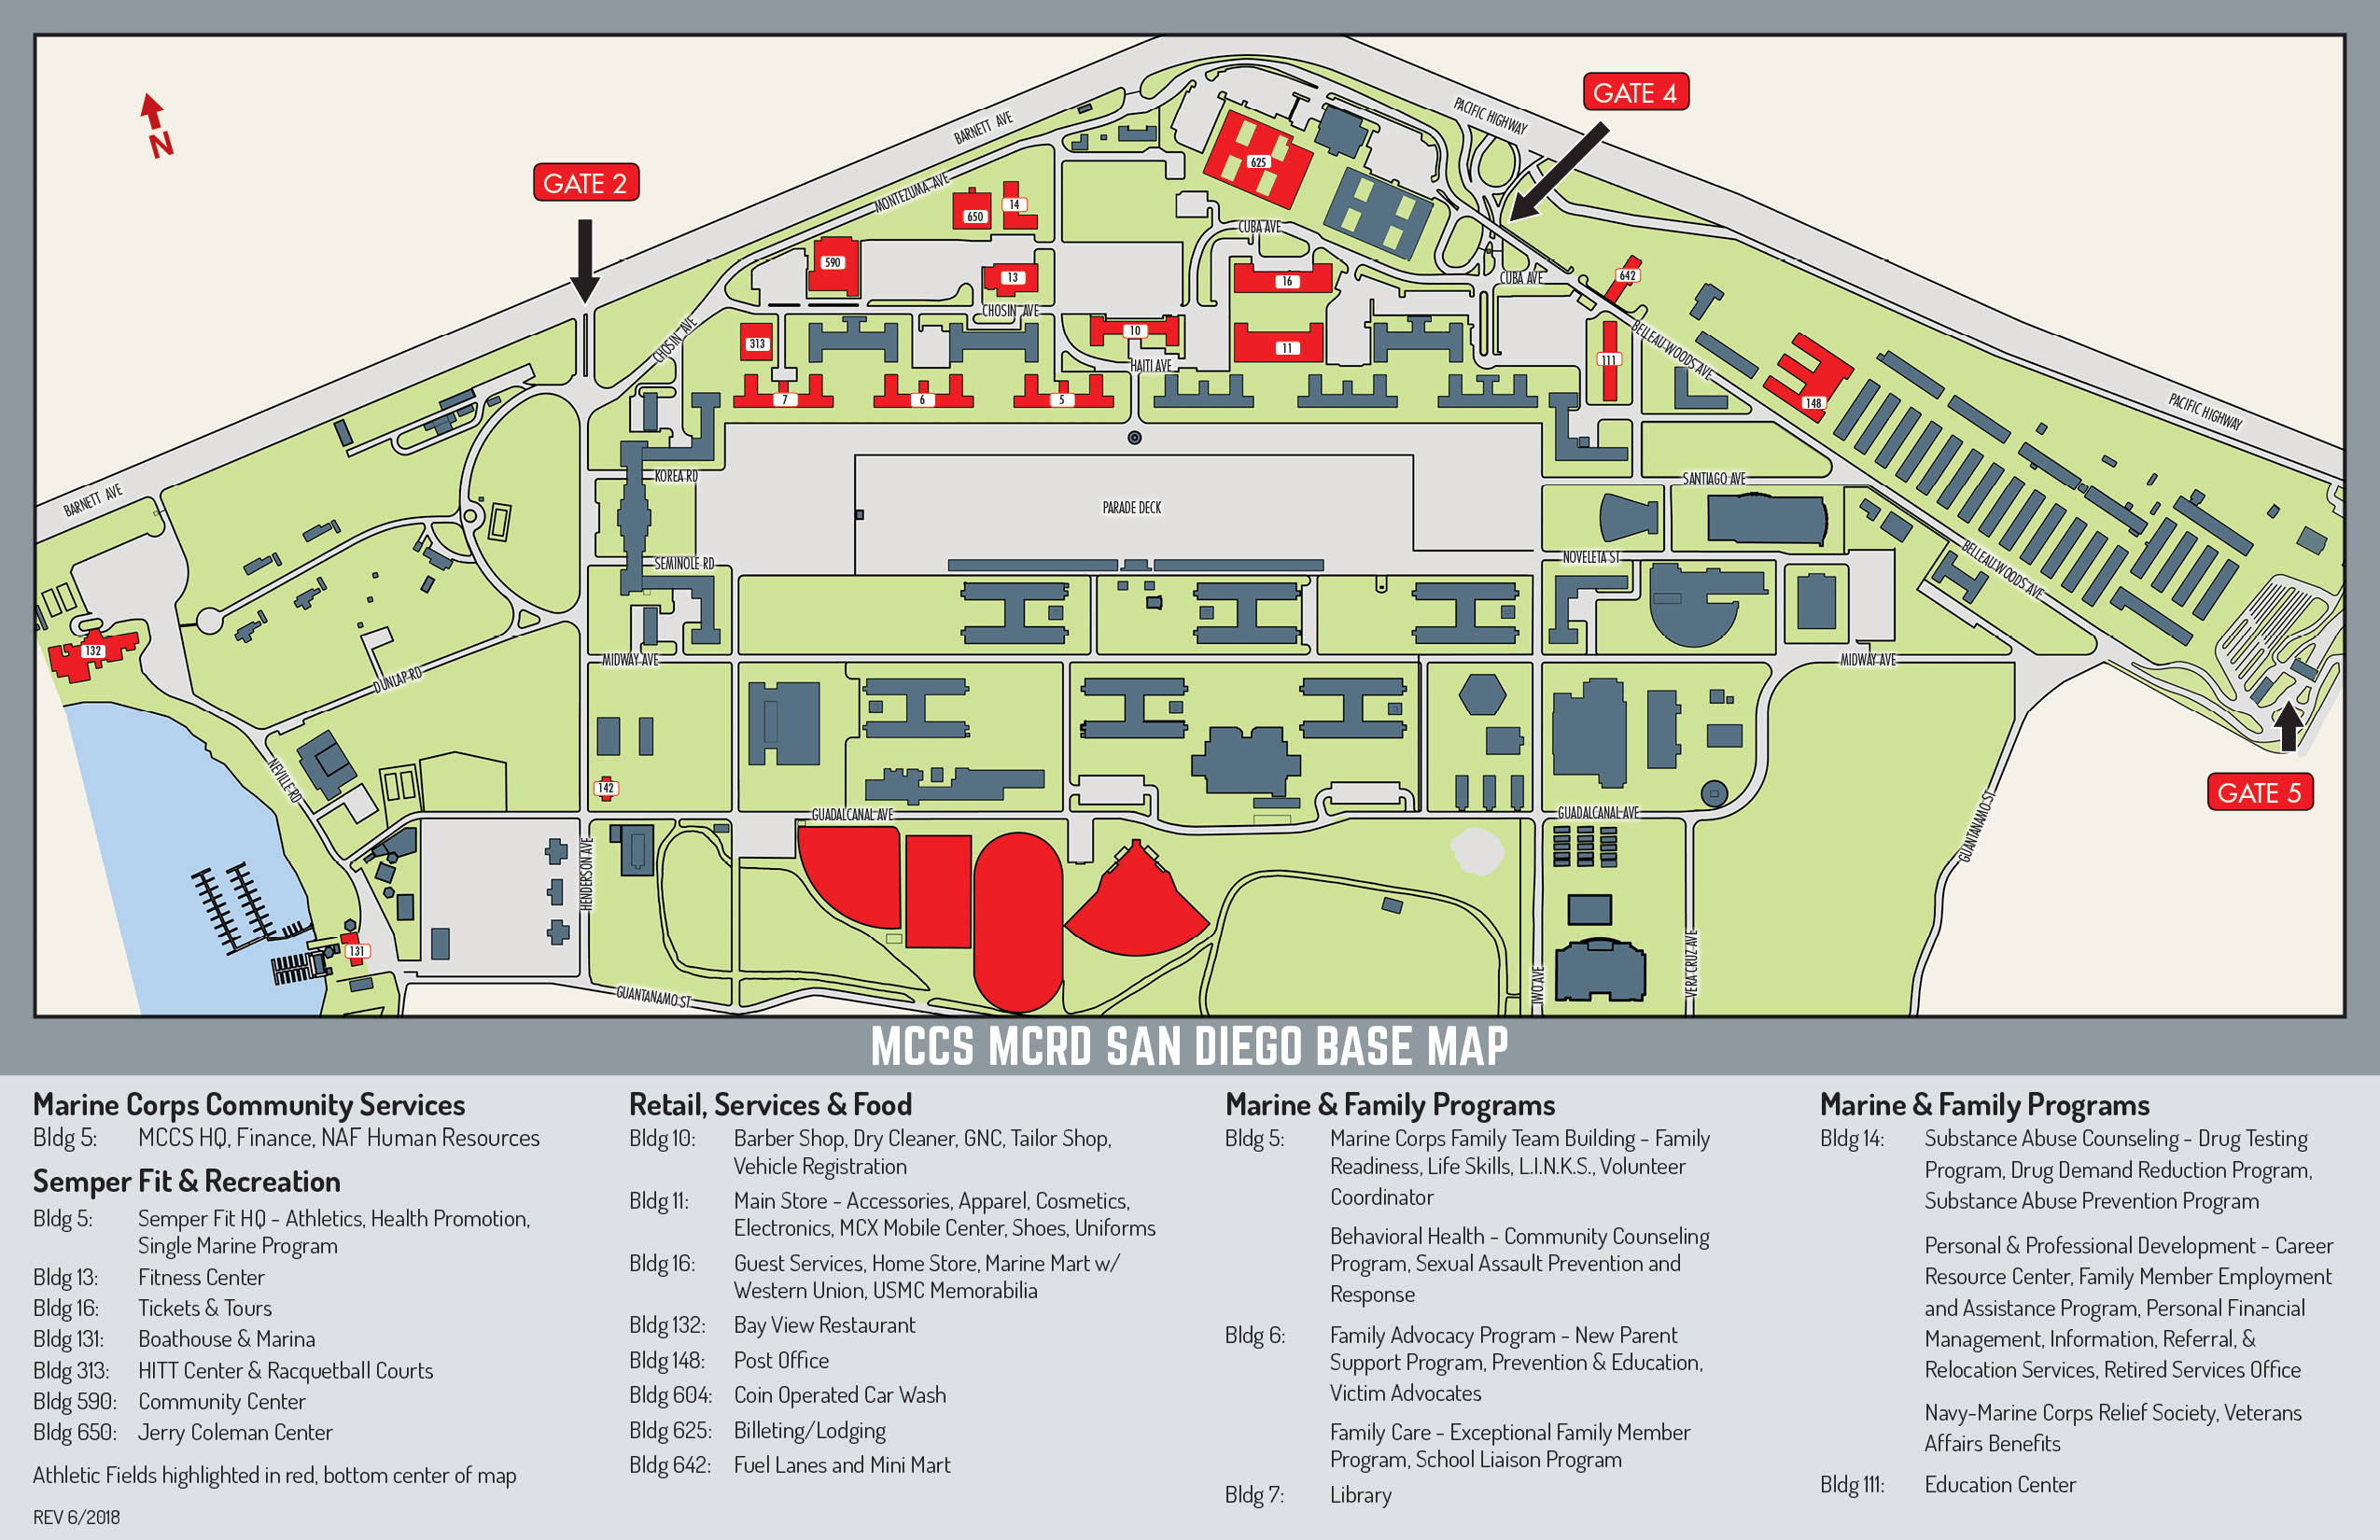 Mcrd Base Map – Marine Corps Community Services, Mcrd San Diego - Dod Lodging California Map